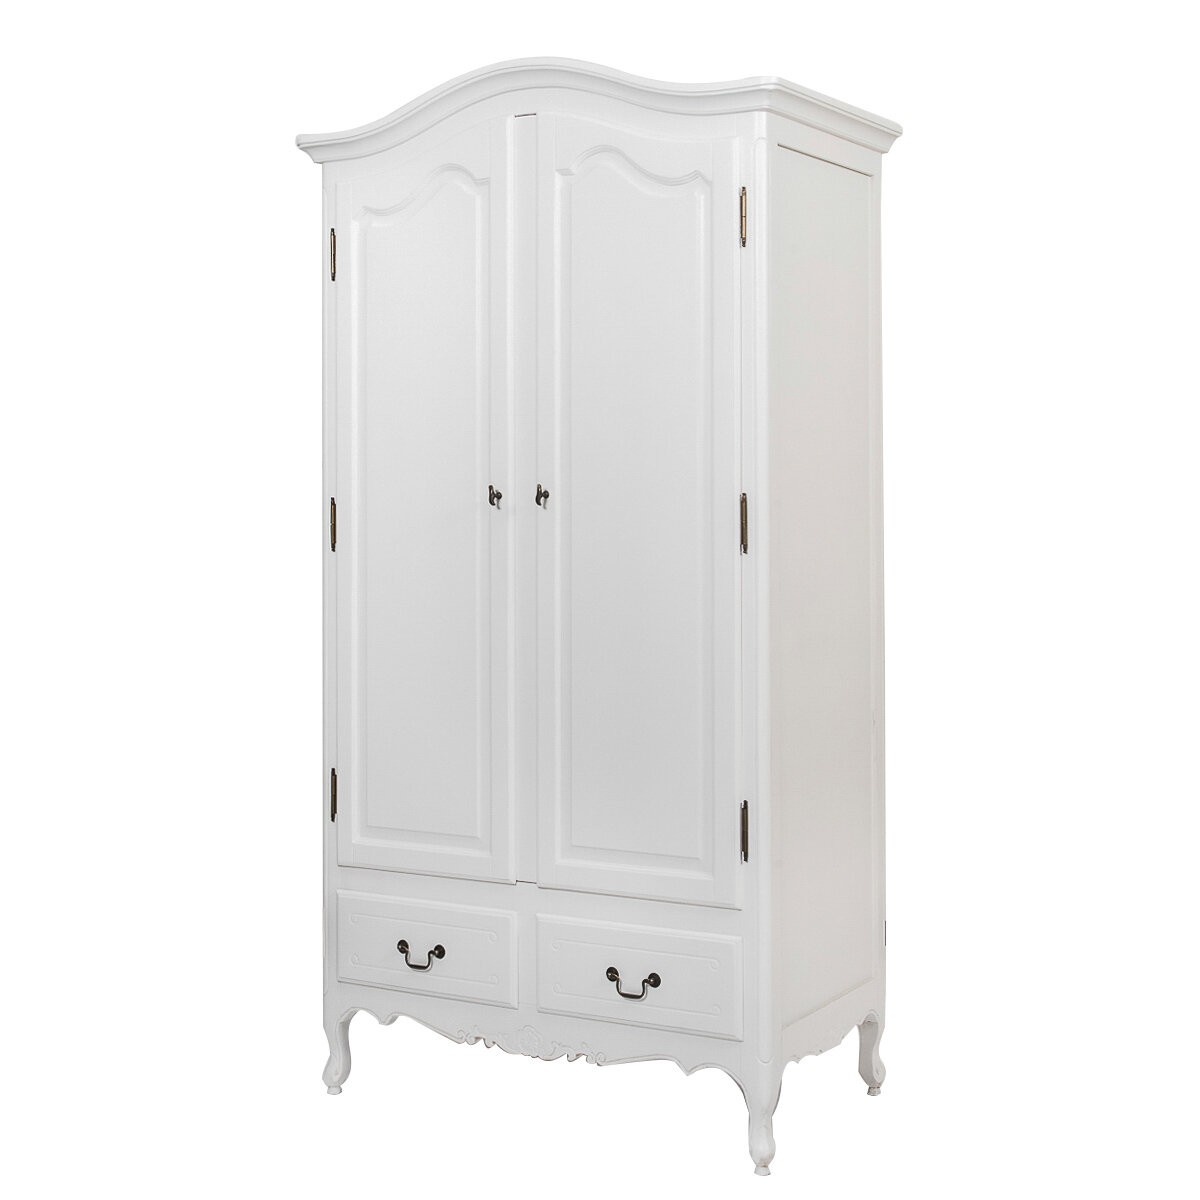 french provincial furniture wardrobe with drawers in white - White Wardrobe